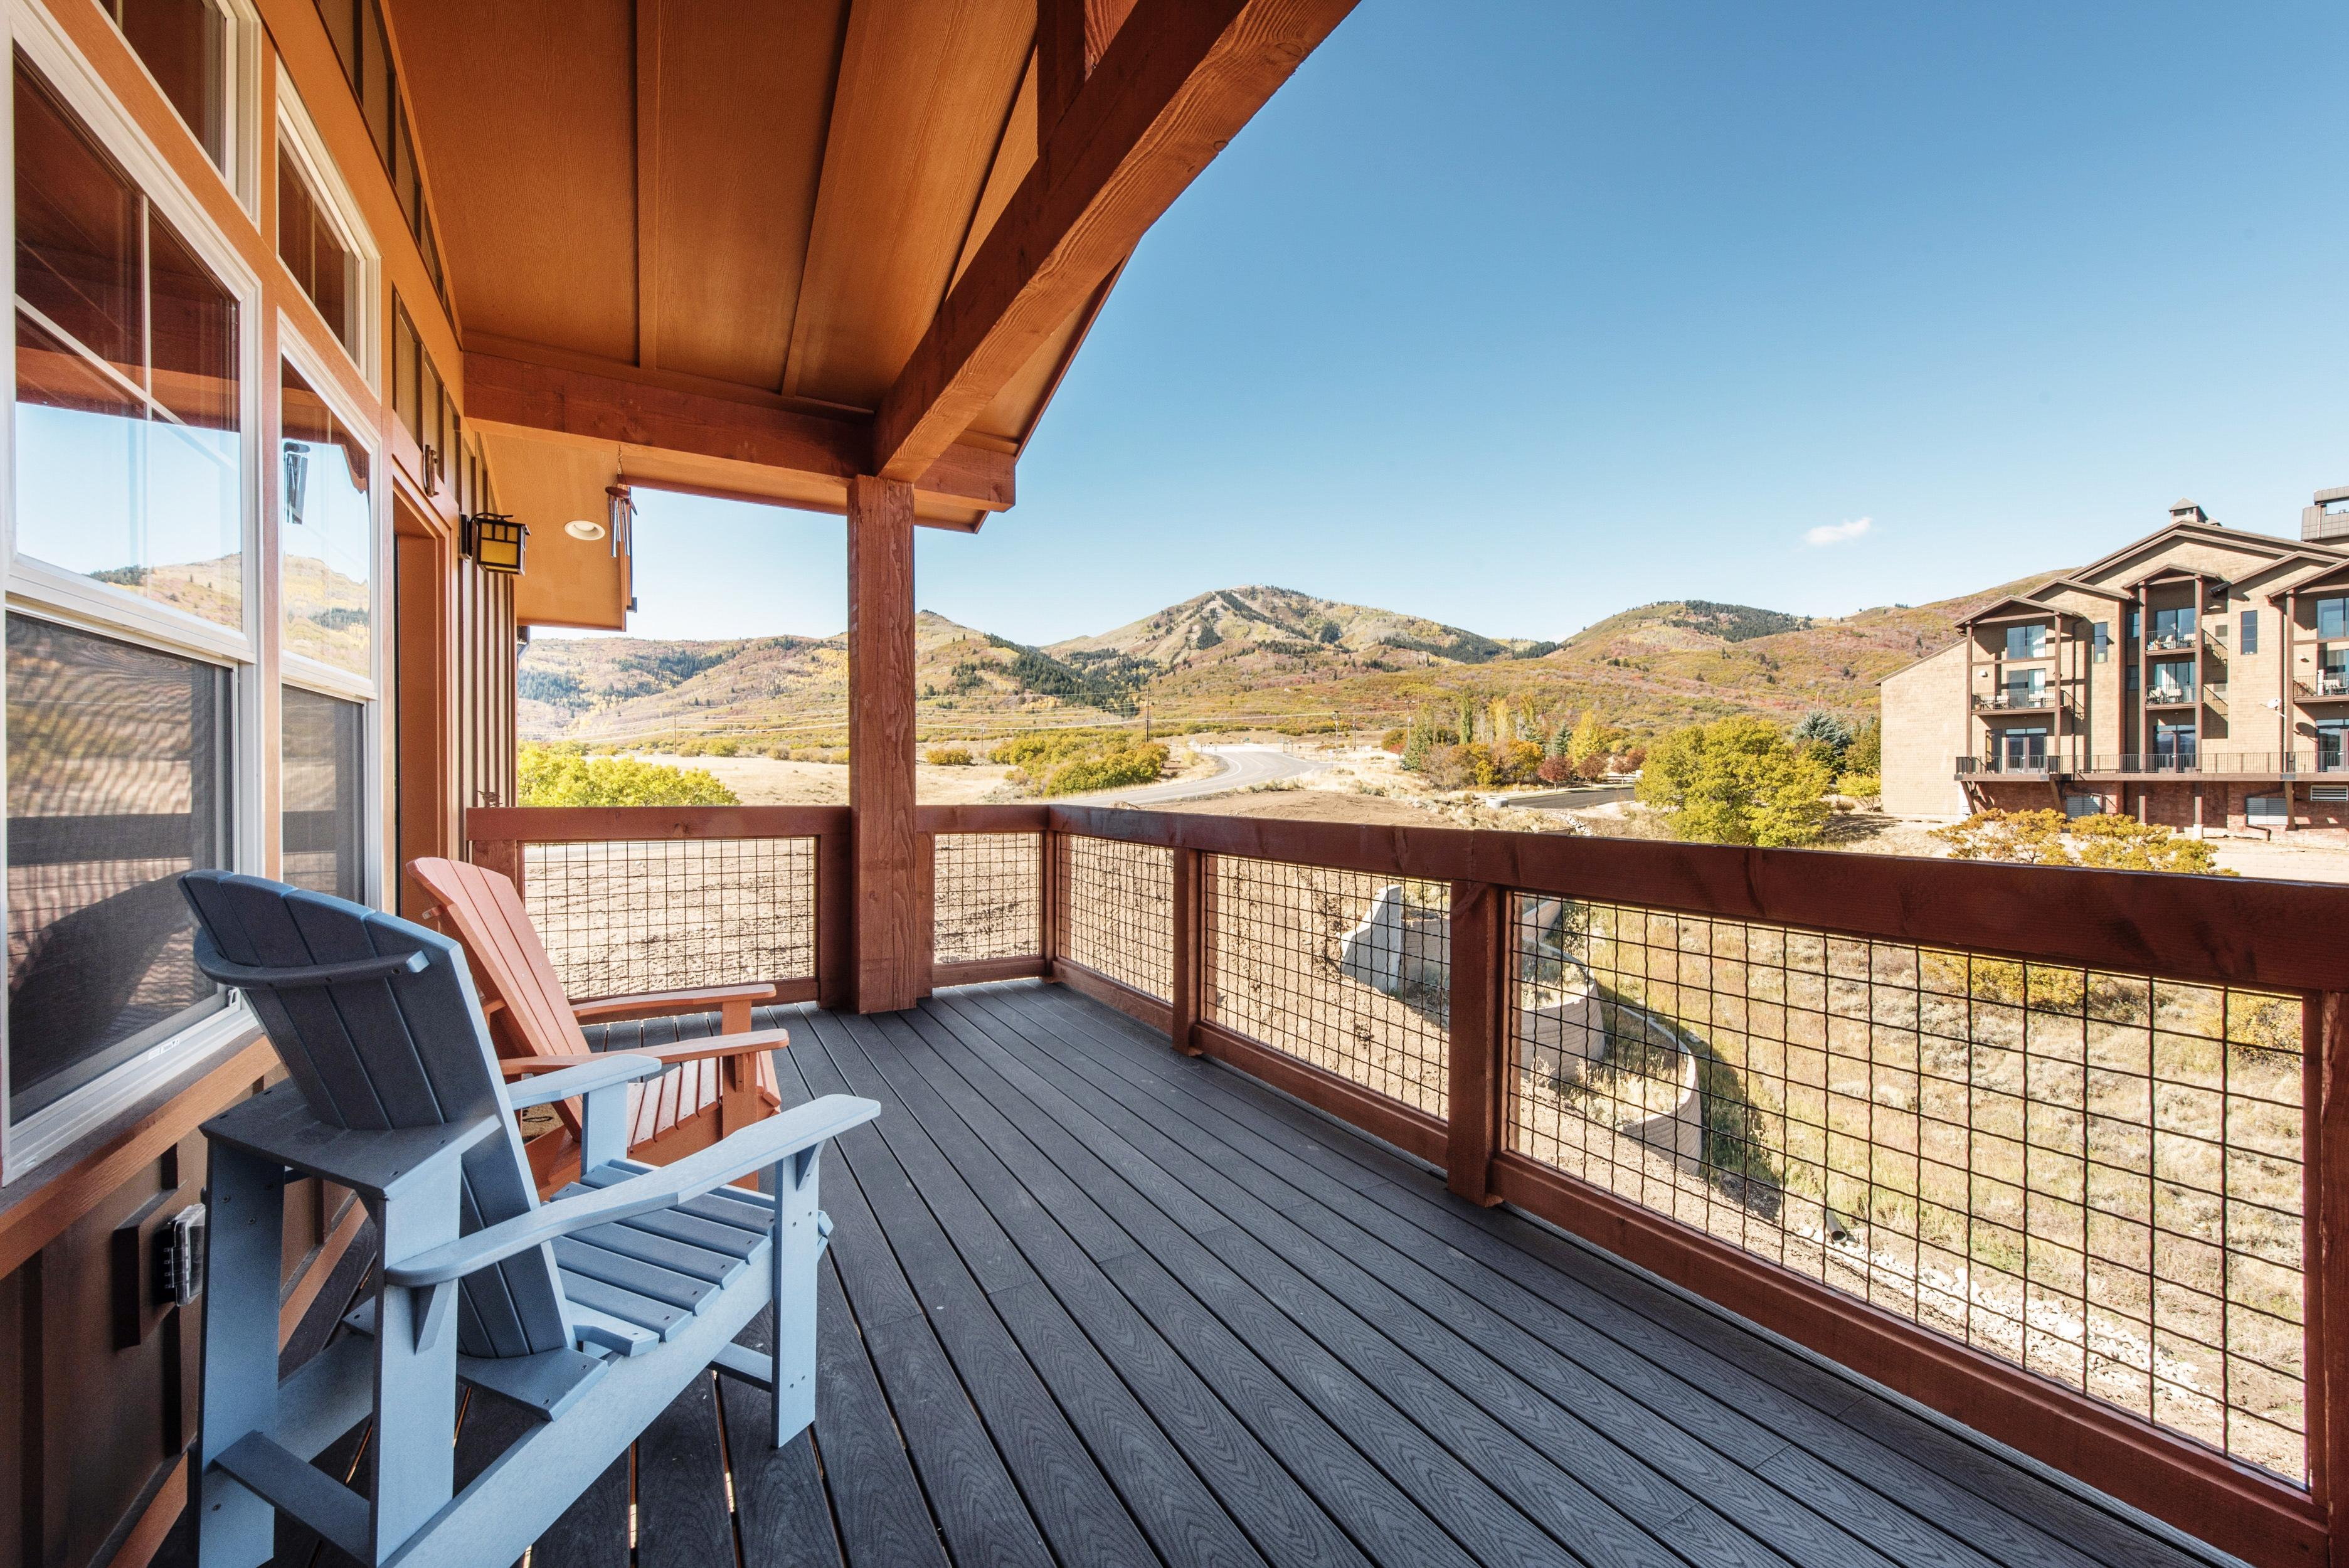 Take in lovely mountain views from your private balcony.